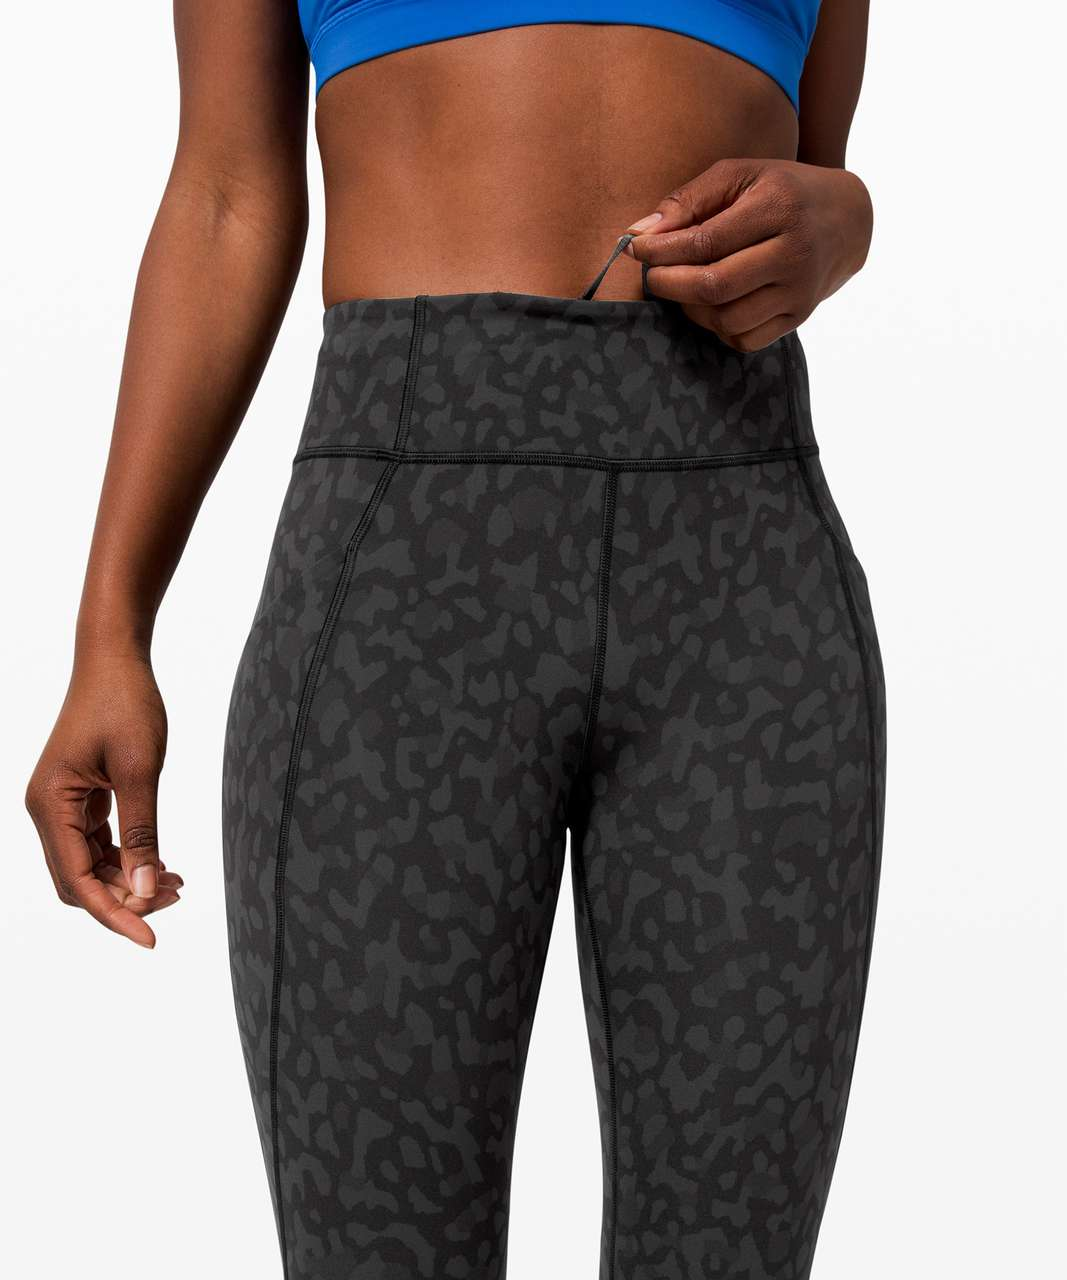 "Lululemon Time To Sweat Crop 23"" - Formation Camo Deep Coal Multi"